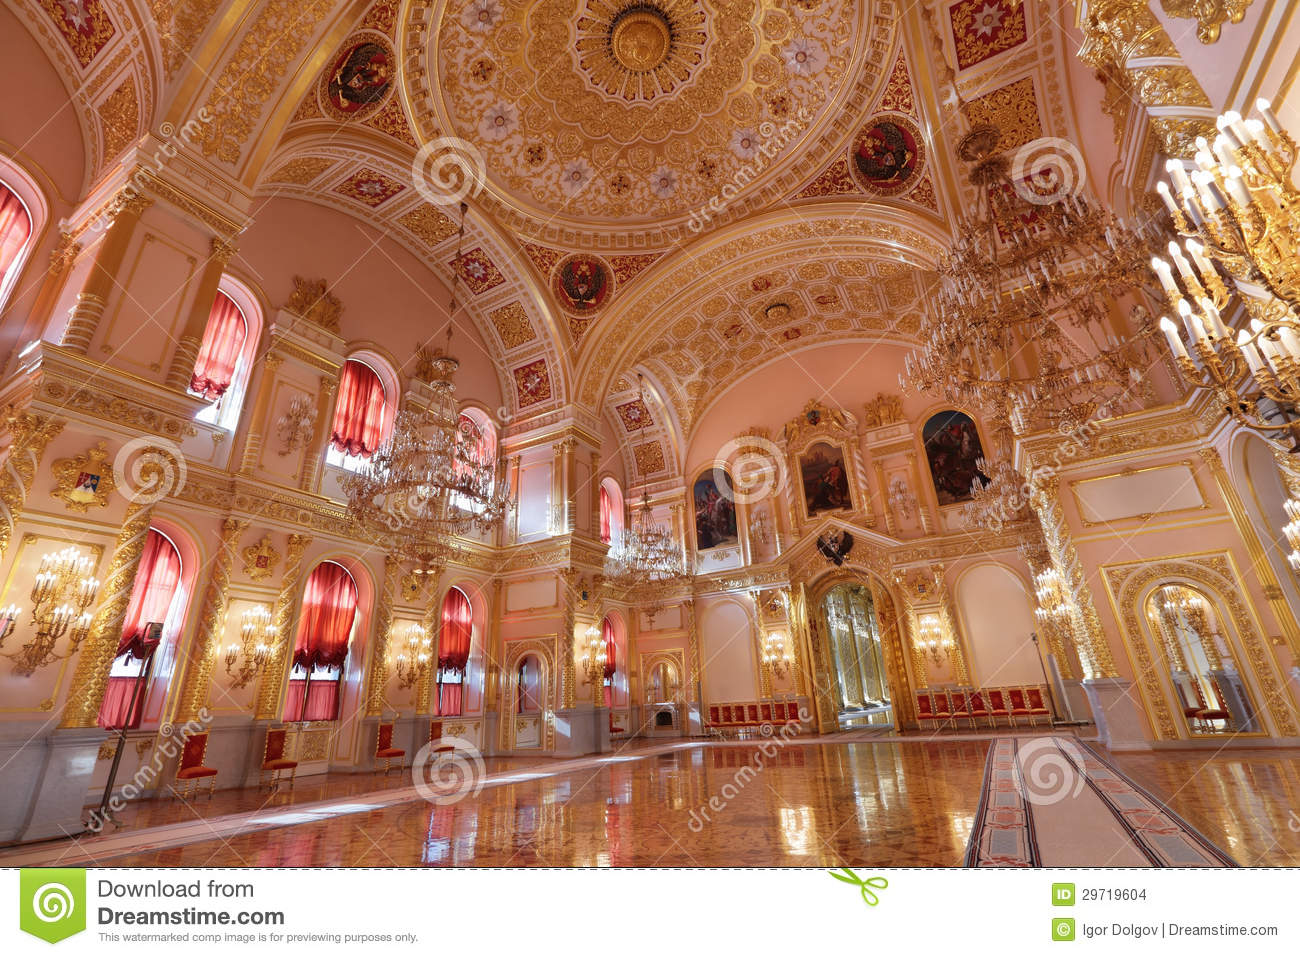 Grand kremlin palace clipart #9